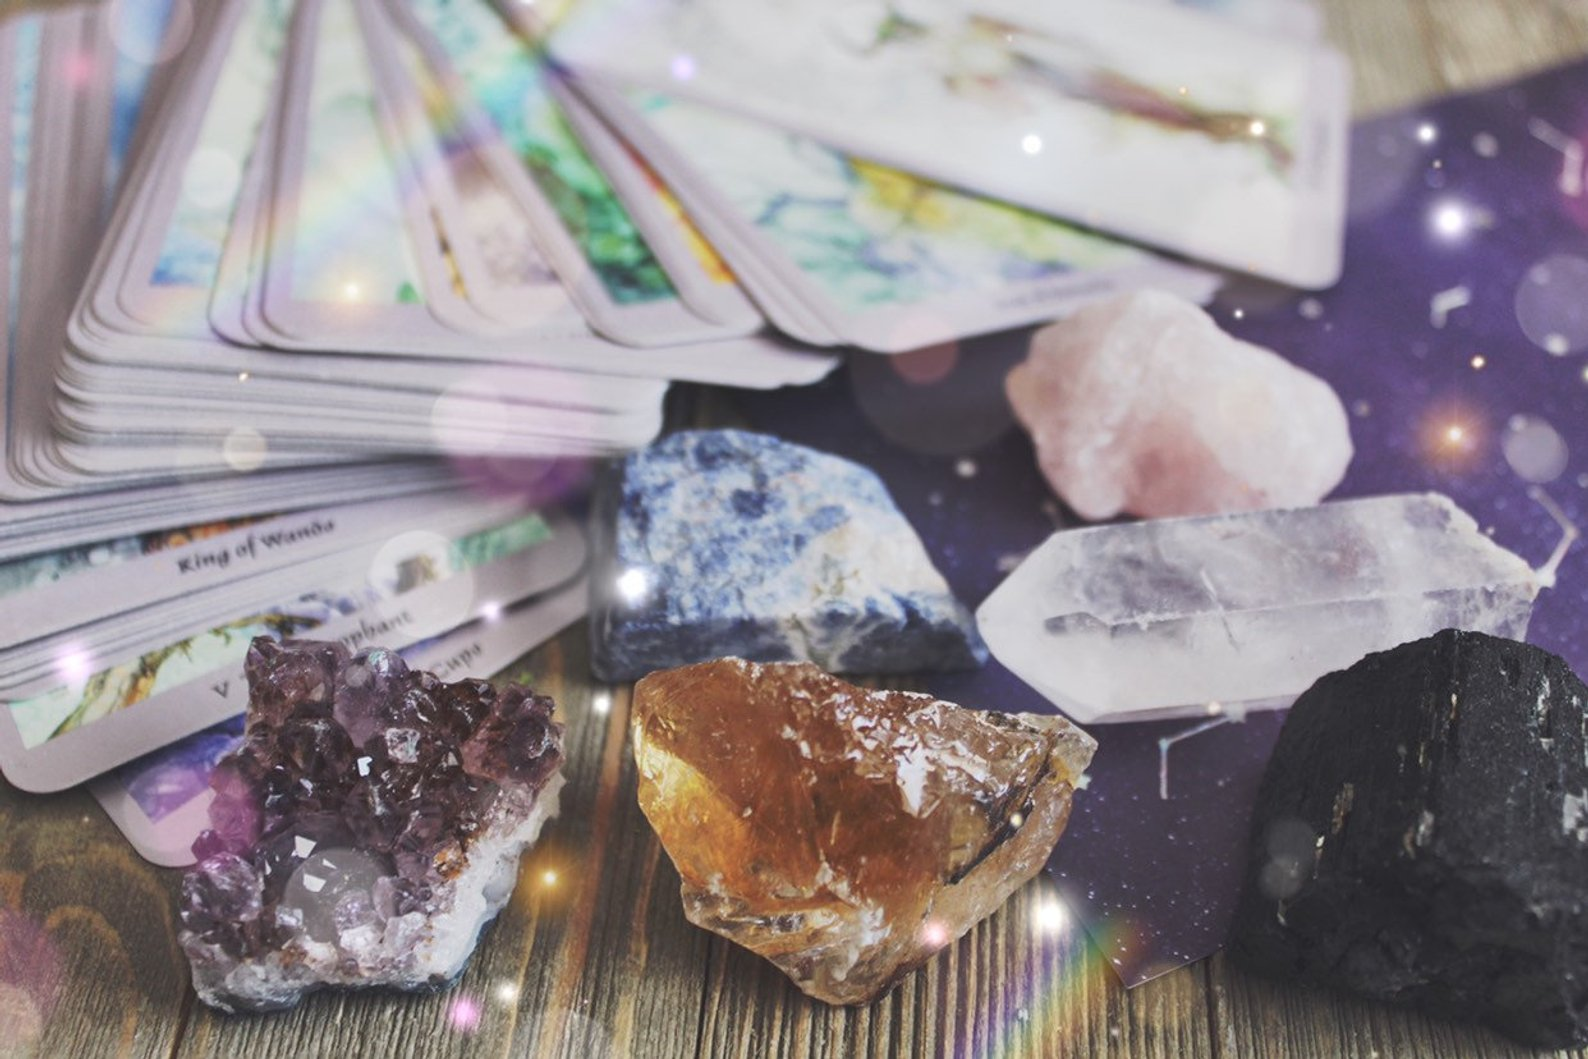 Tarot Crystals By Crystals N Creations